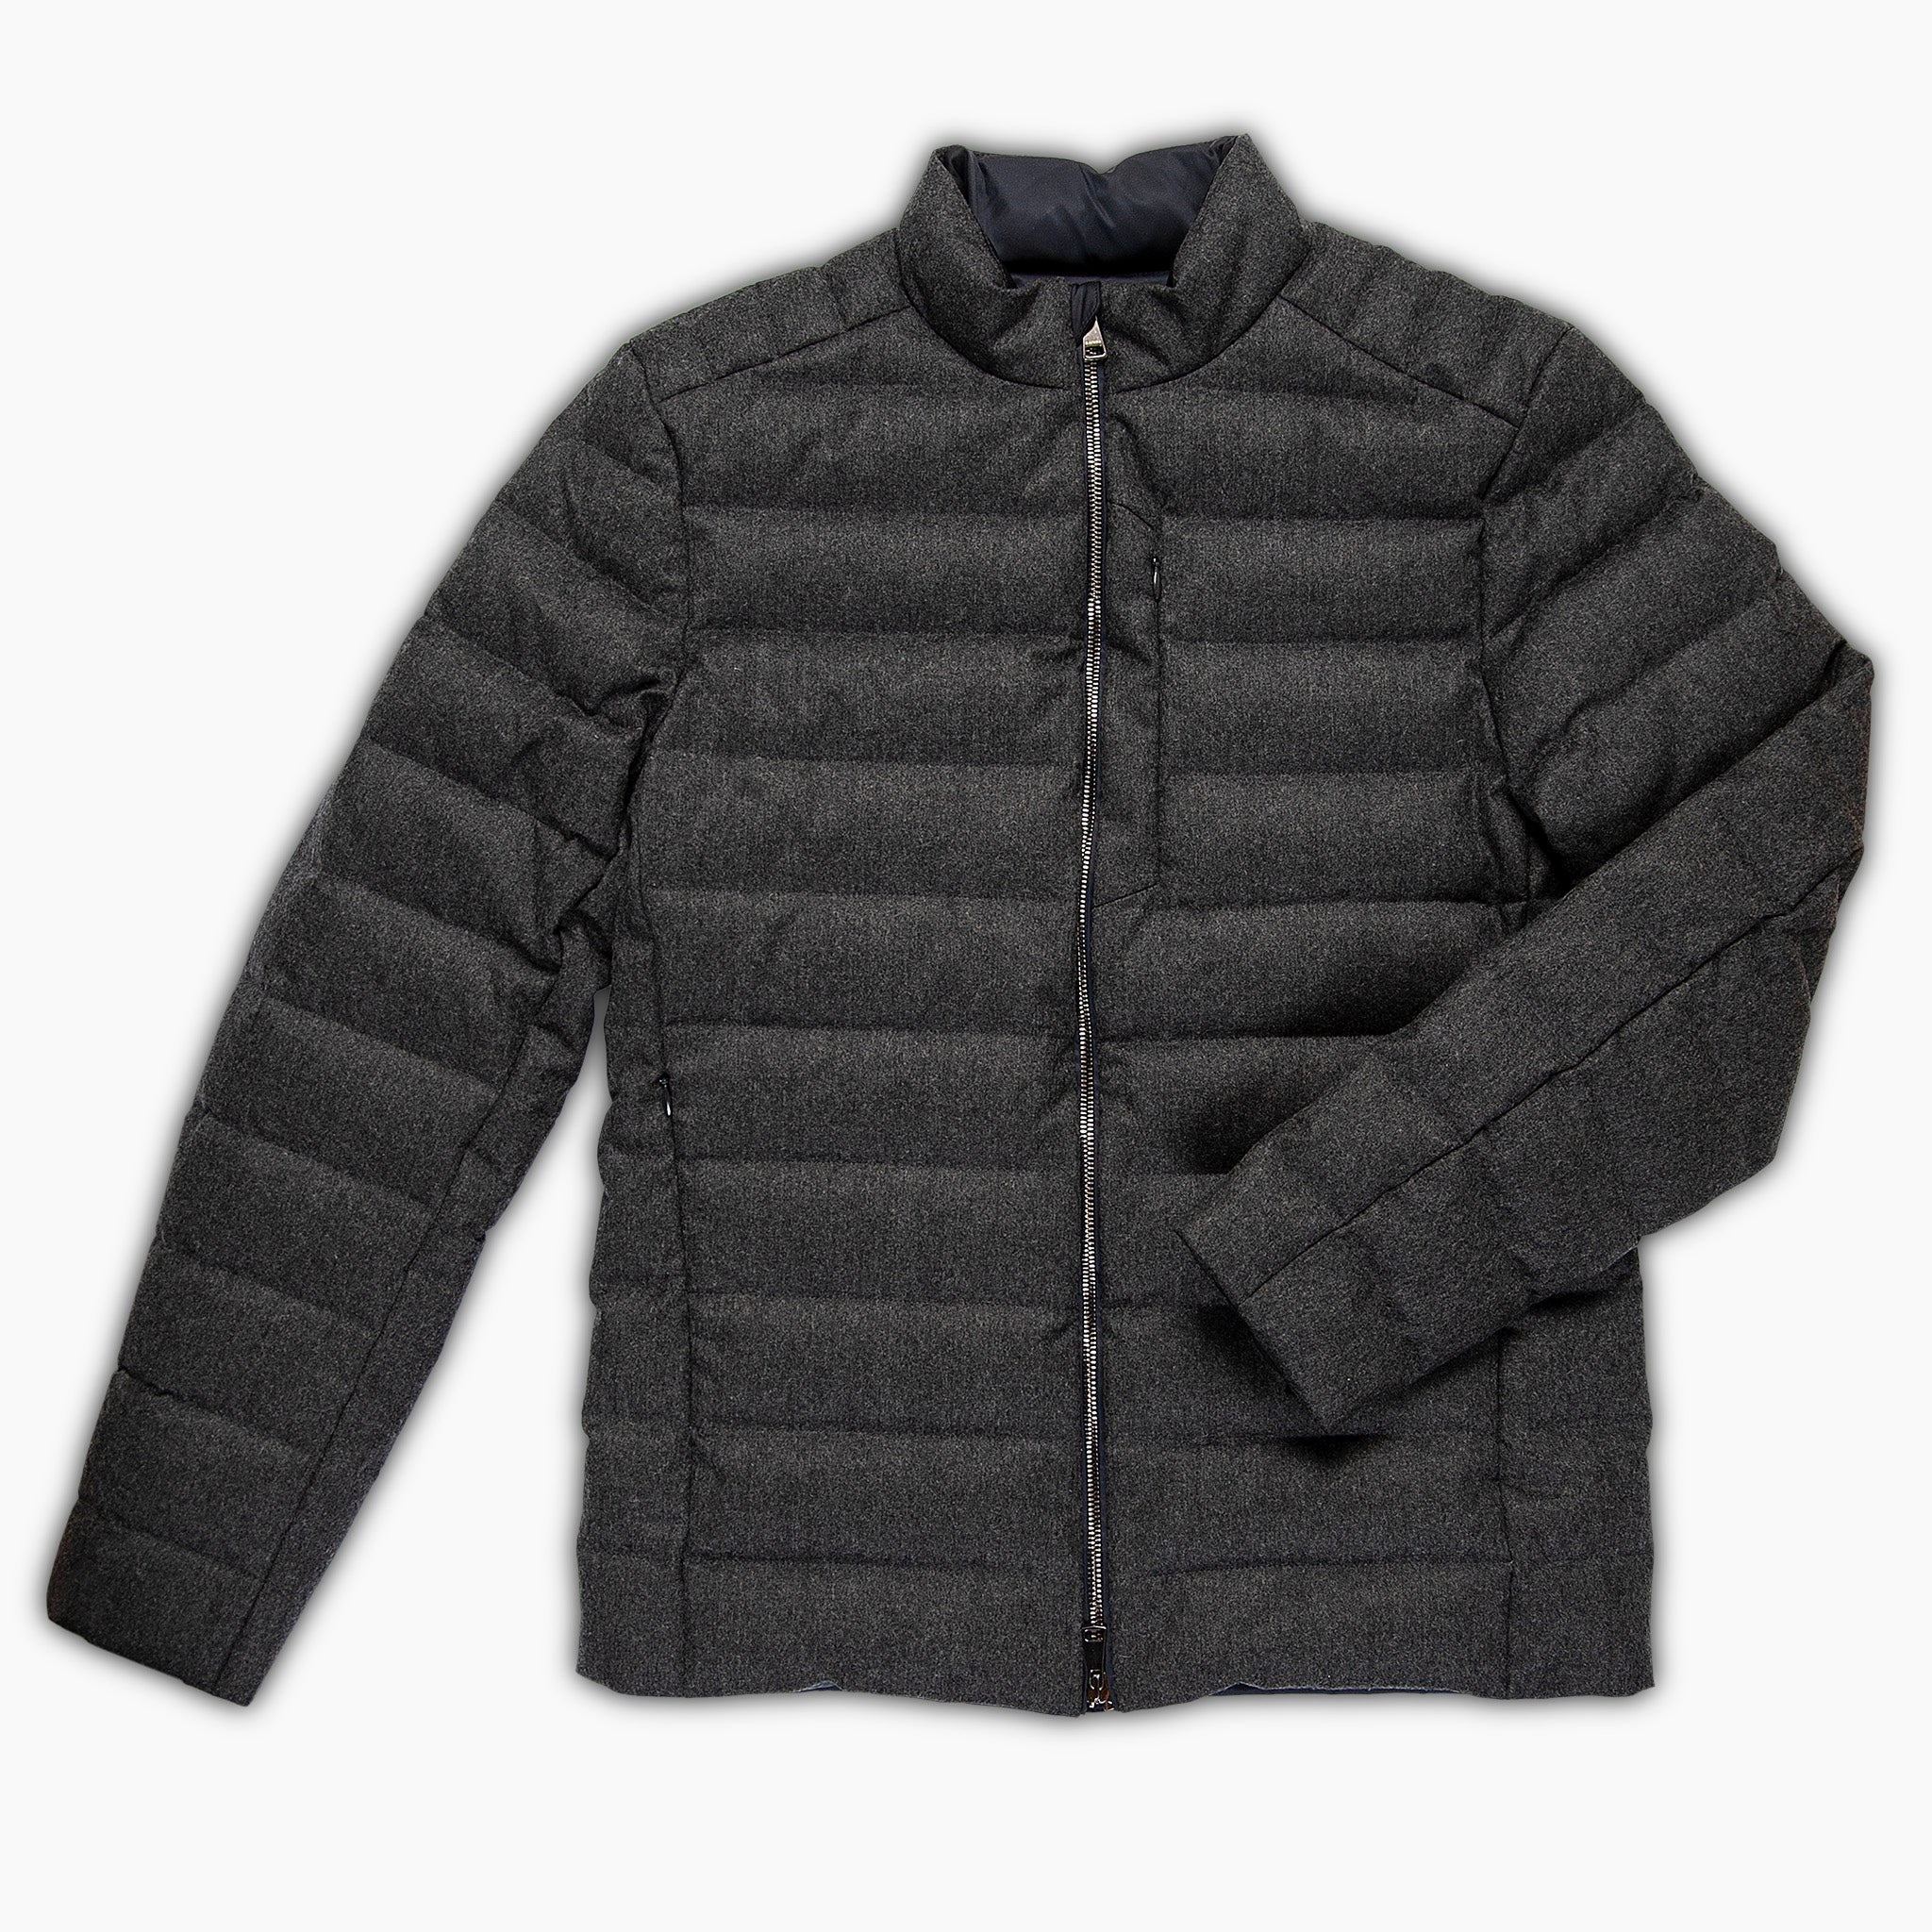 Agapet quilted wool down jacket (dark grey melange)